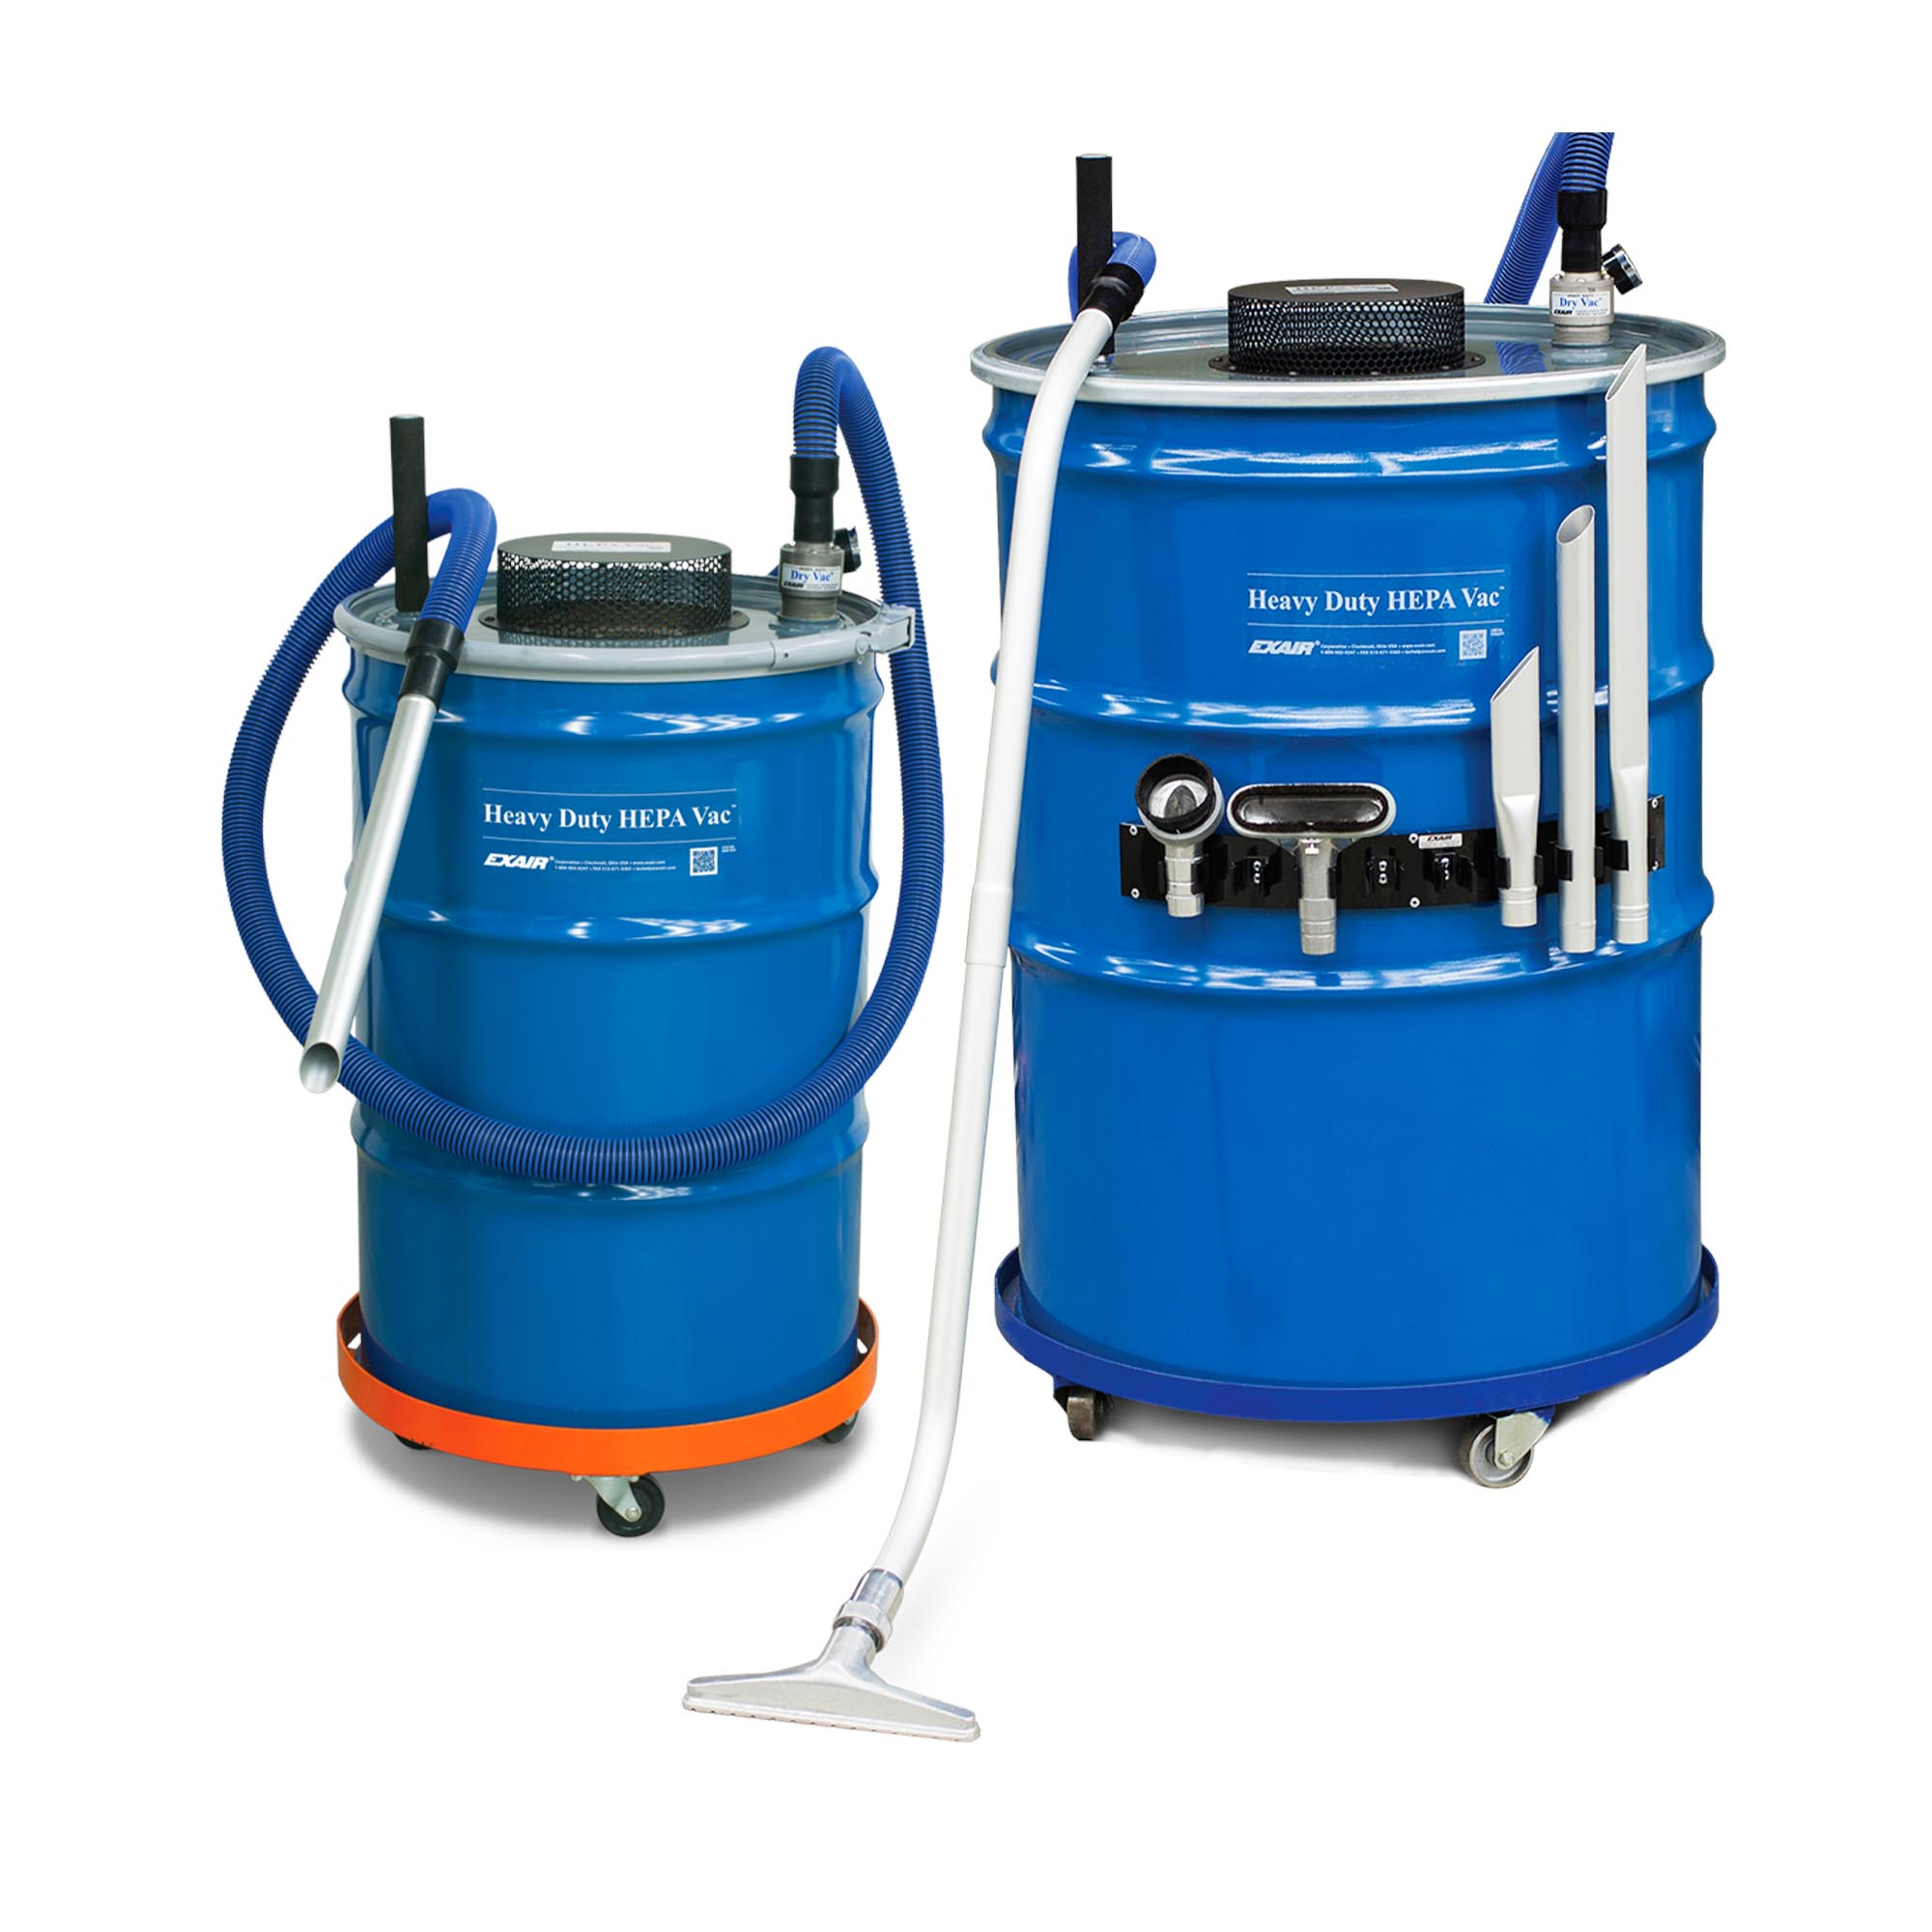 Heavy Duty HEPA Vacs are available in 30, 55 and 110 gallon sizes.